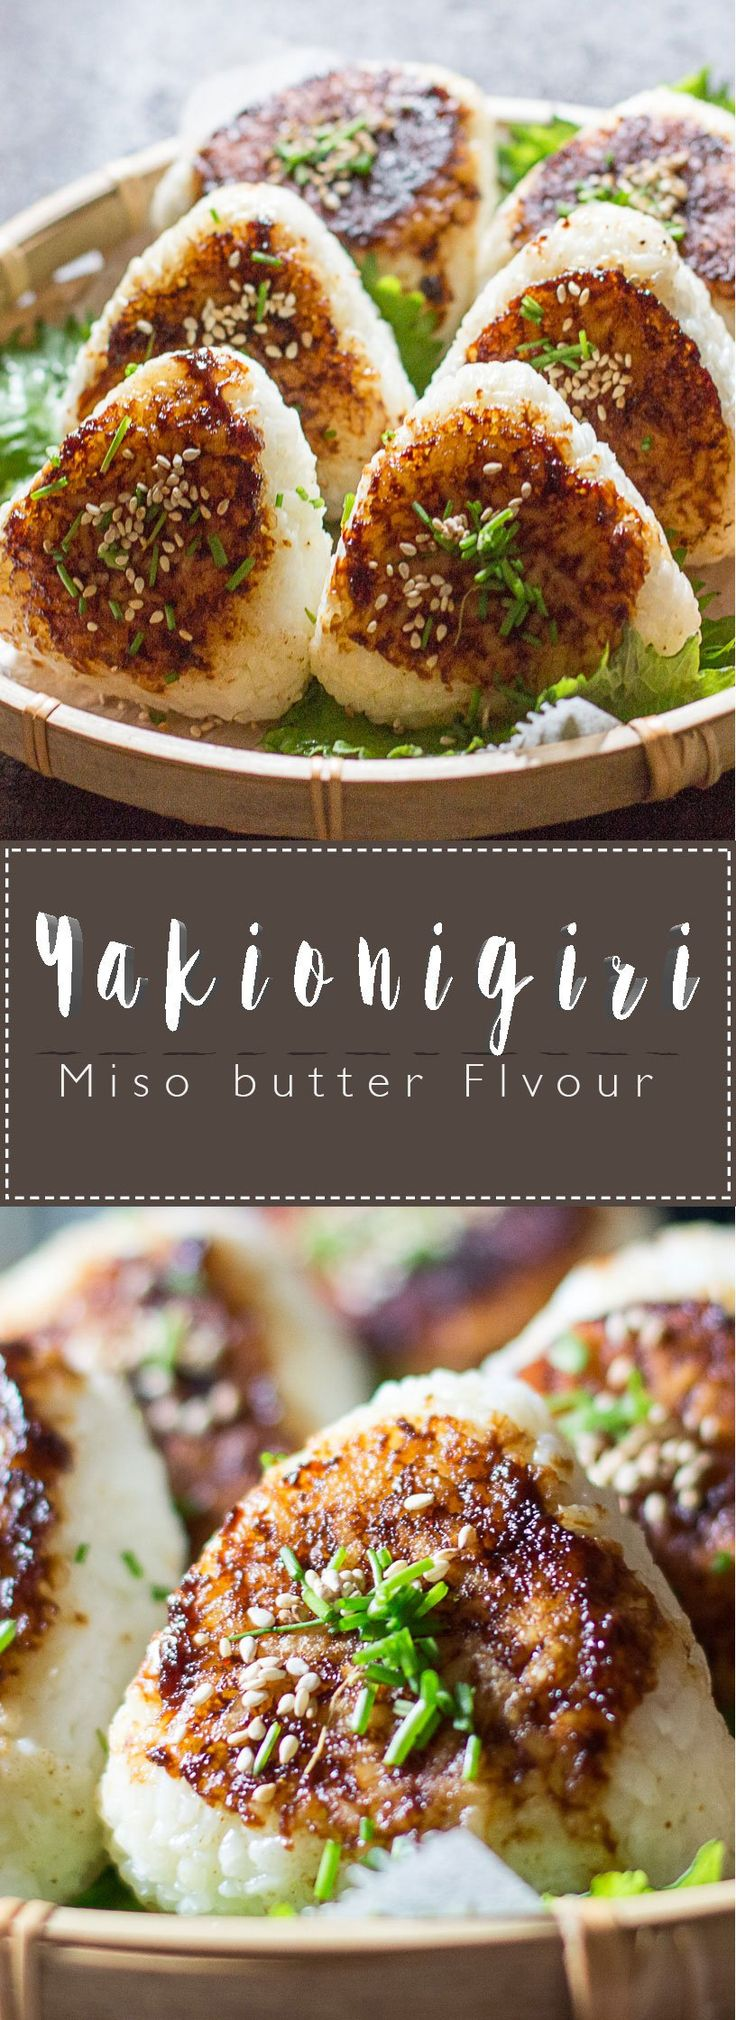 Yakionigiri Miso Butter Flavour collage